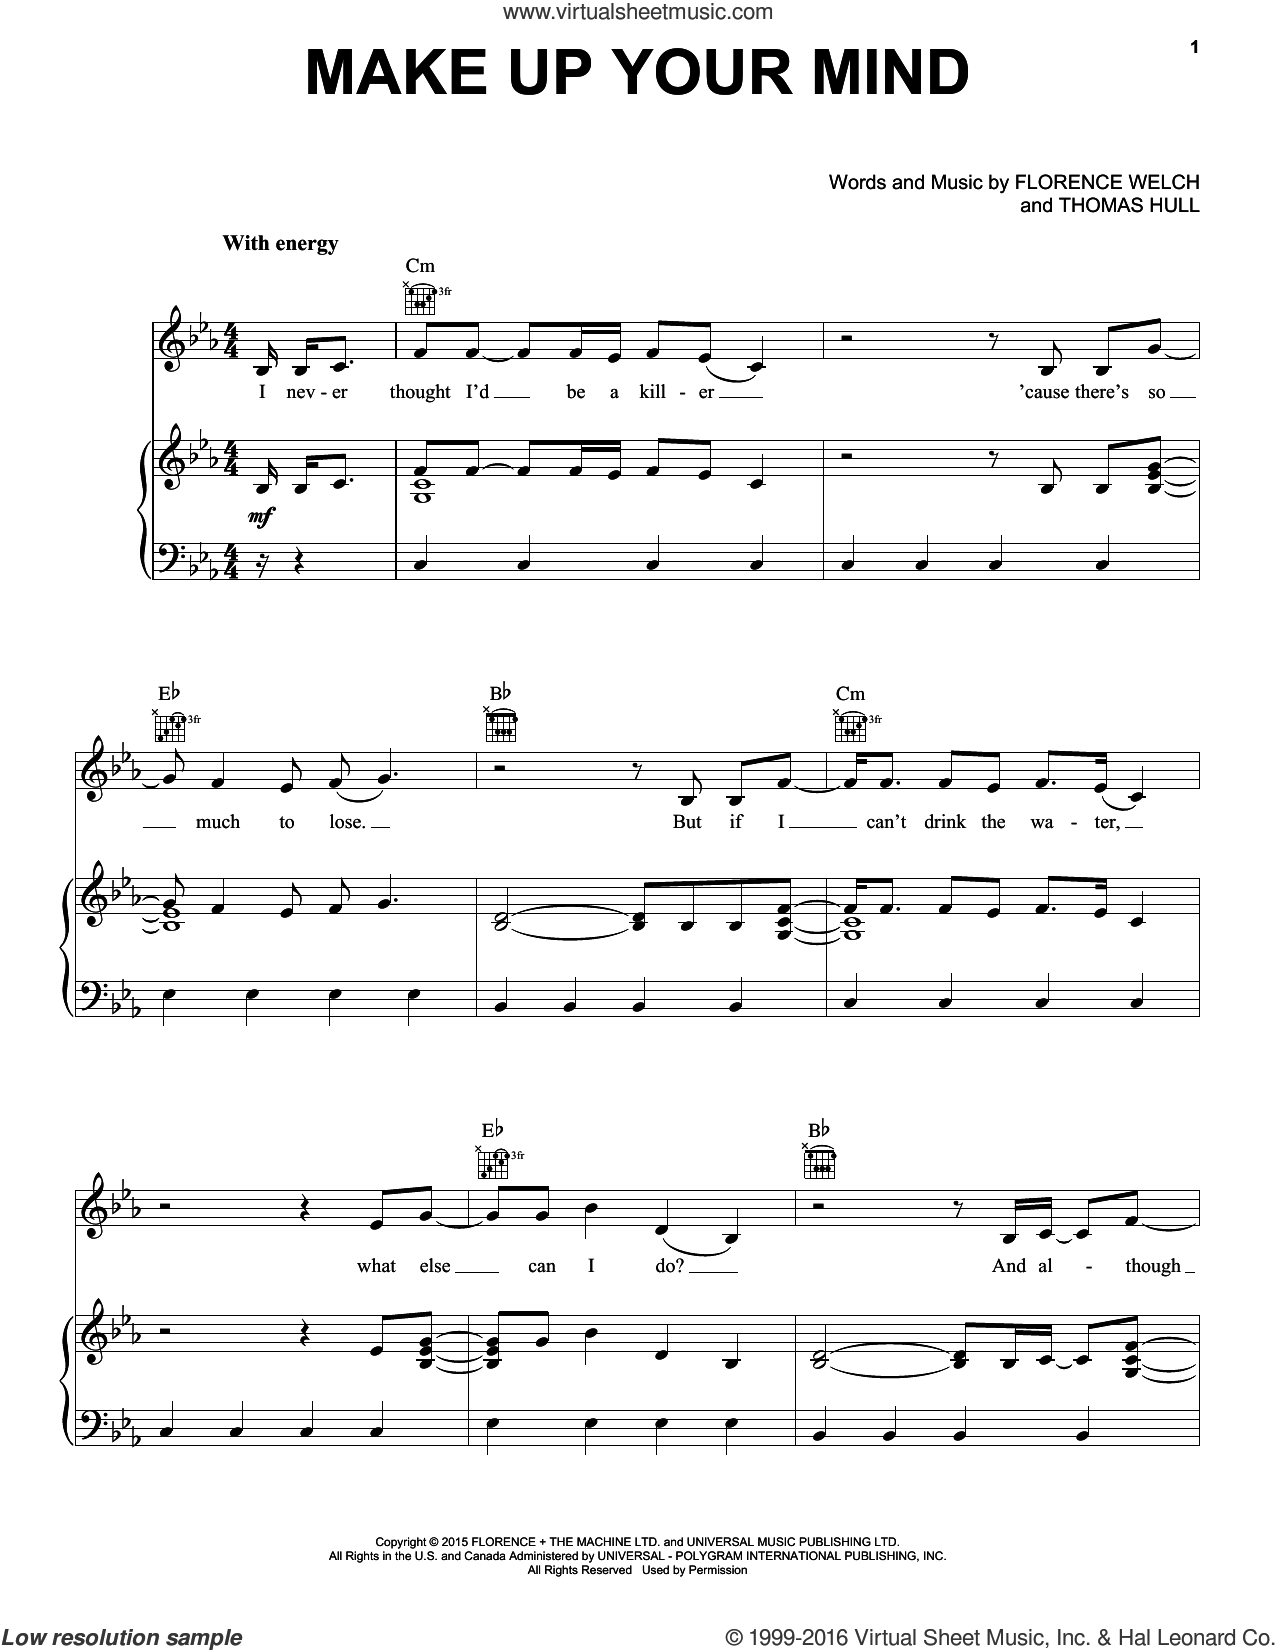 Make Up Your Mind sheet music for voice, piano or guitar by Florence And The Machine, Florence Welch and Tom Hull, intermediate skill level